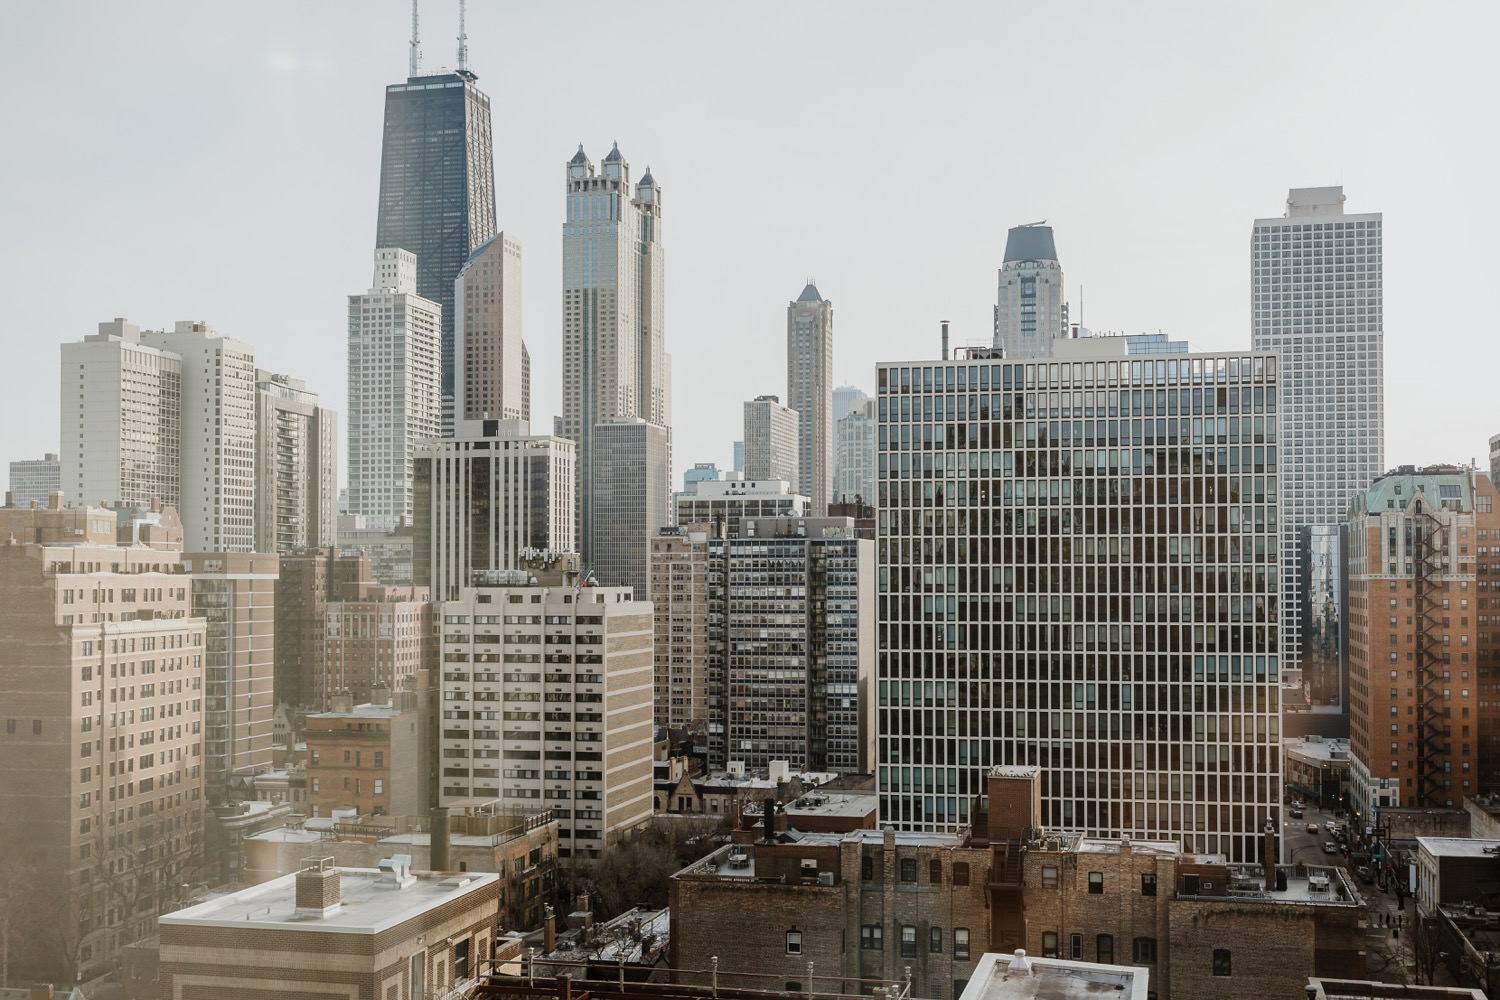 view of downtown chicago from the balcony at ambassador hotel